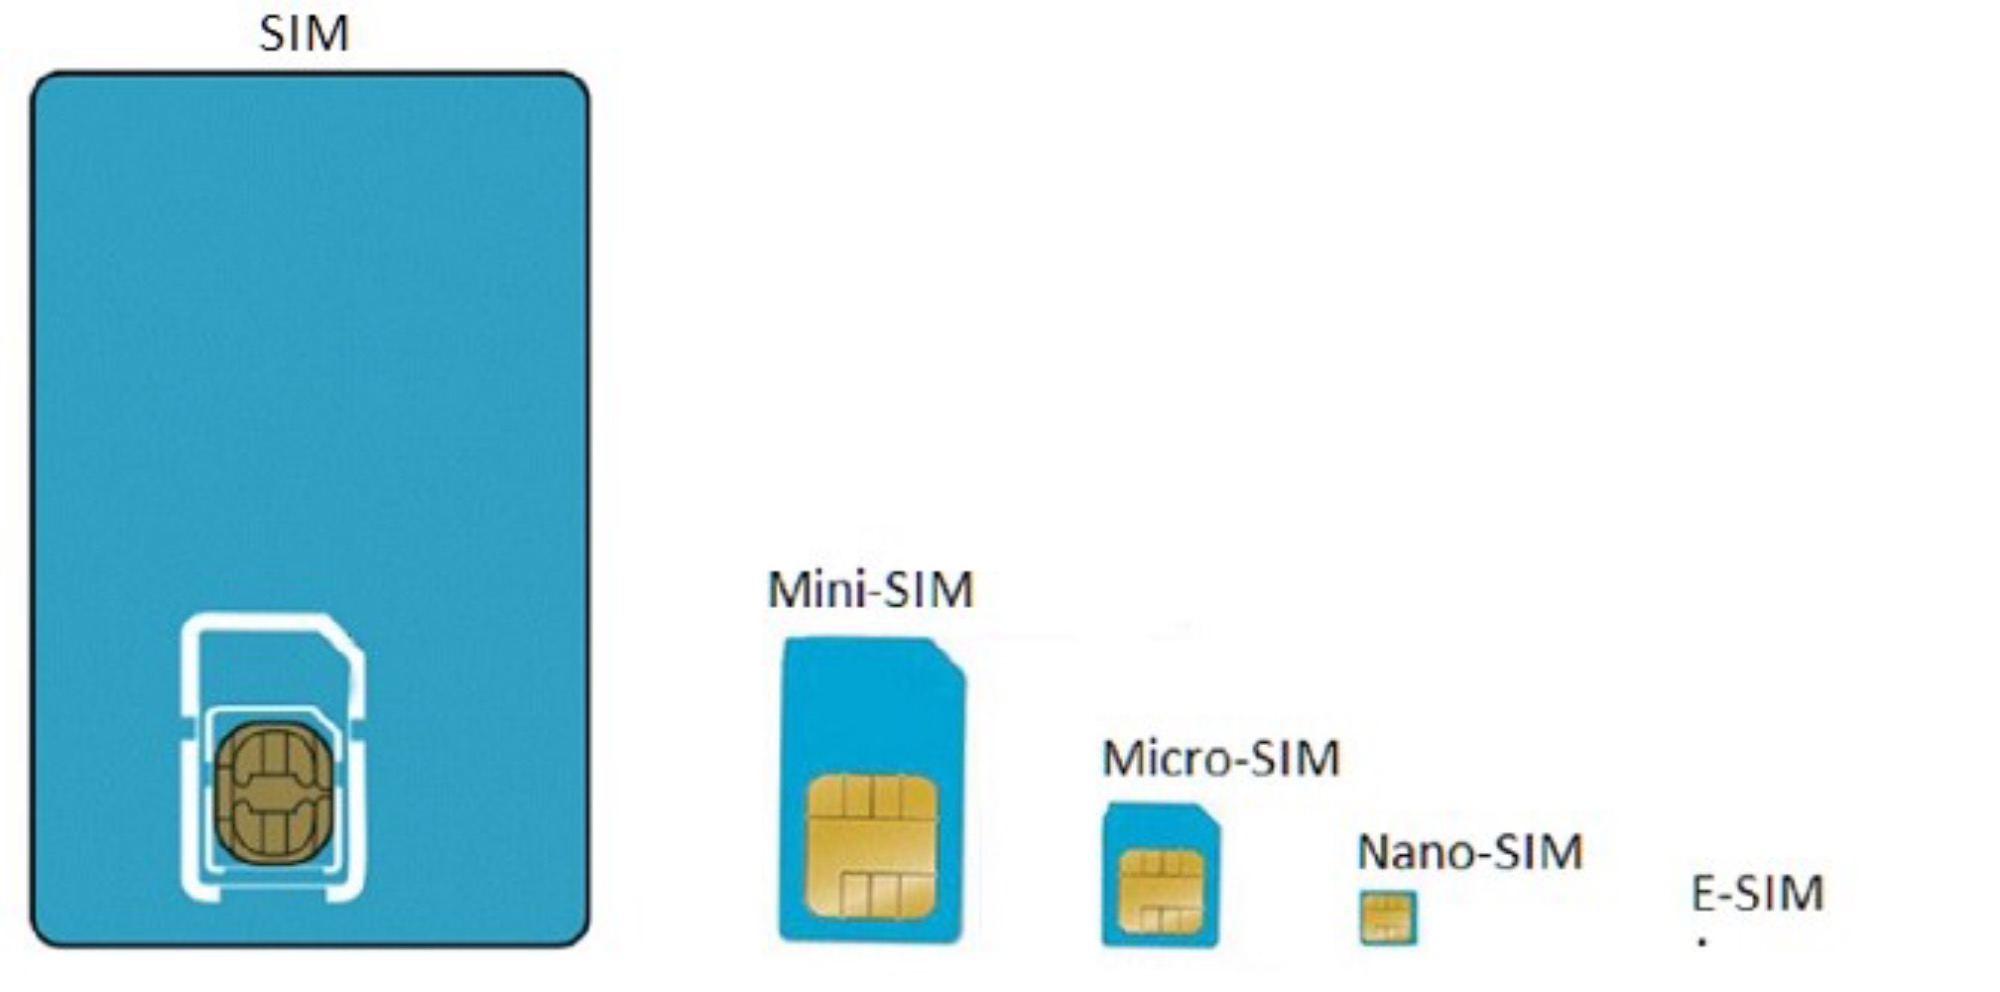 http://hablandodemanzanas.com/sites/default/files/Imagen-Apple-eSIM-evolucio%CC%81n.jpg